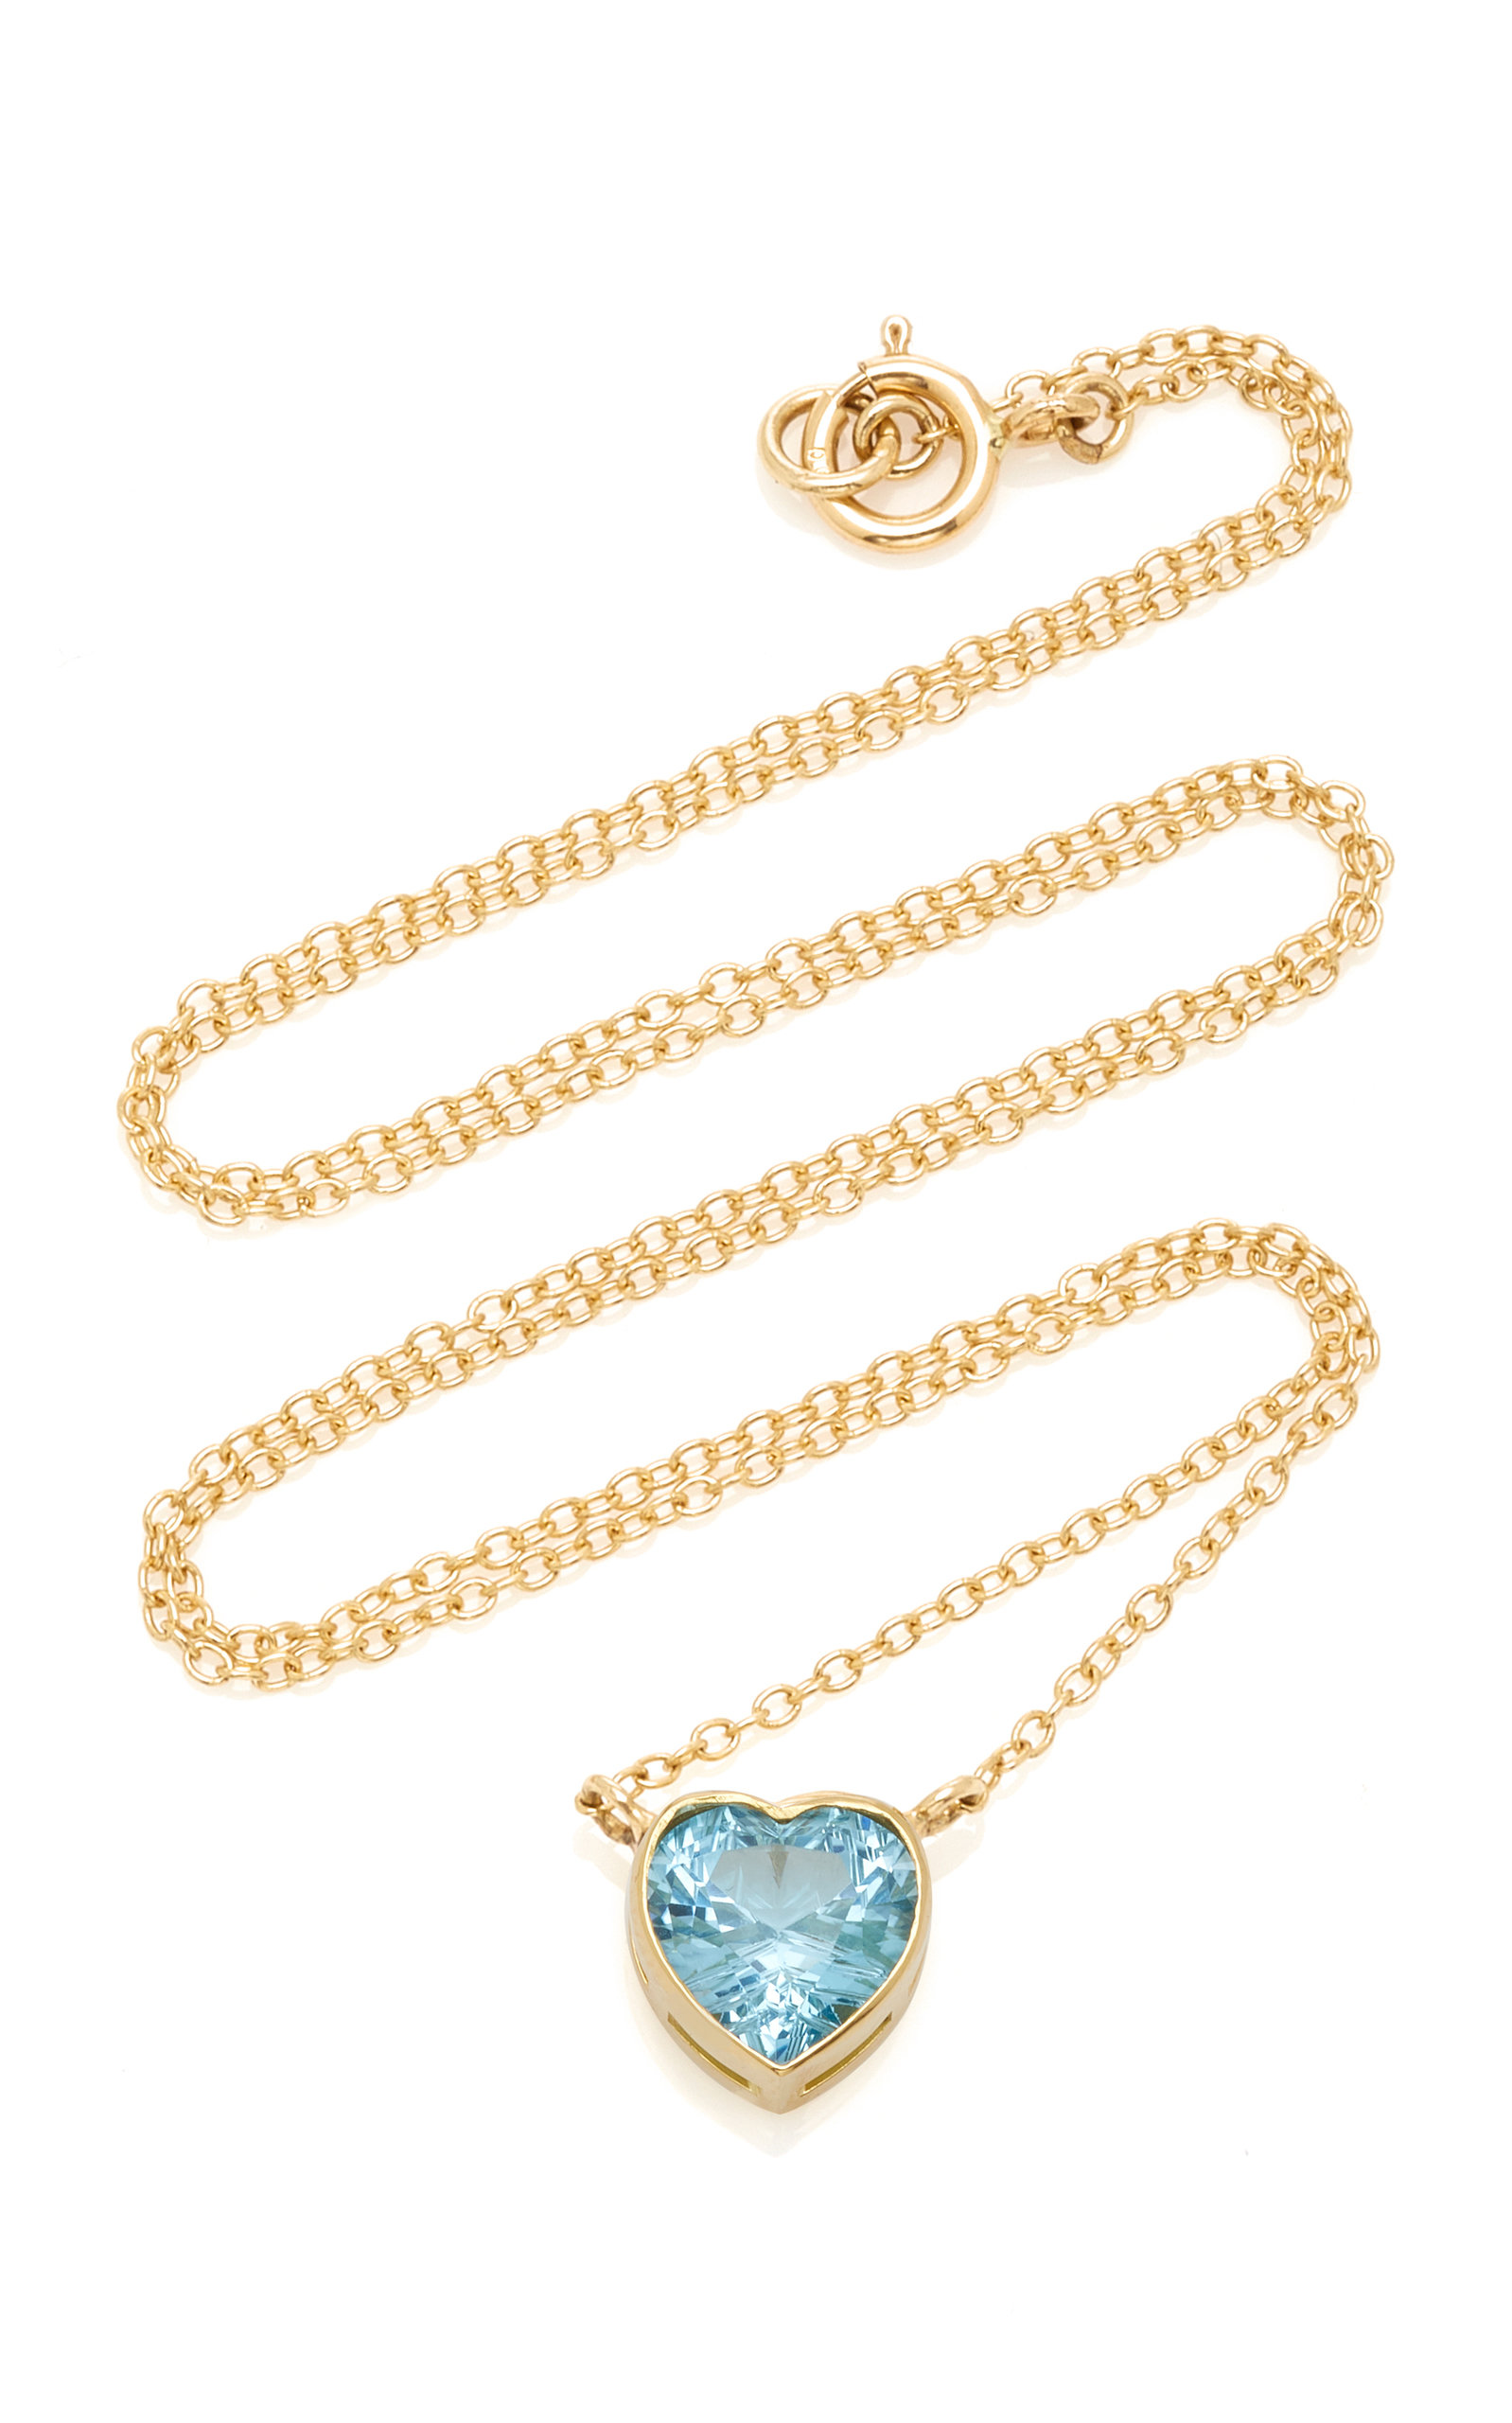 Women's London 18K Gold and Topaz Necklace